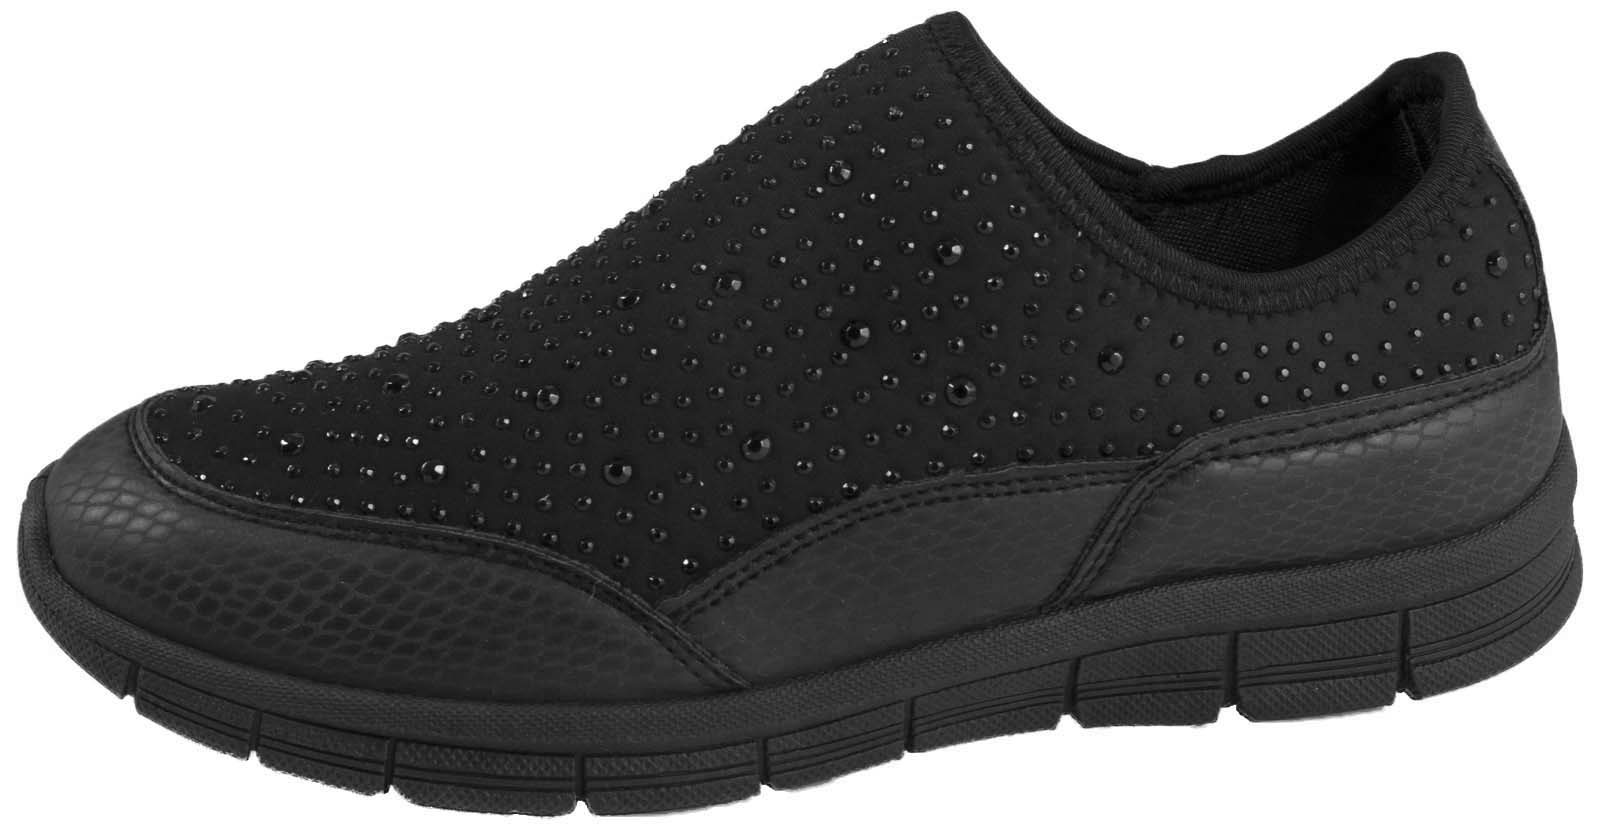 Womens-Diamante-Glitter-Trainers-Slip-On-Pumps-Comfort-Running-Gym-Shoes-Size